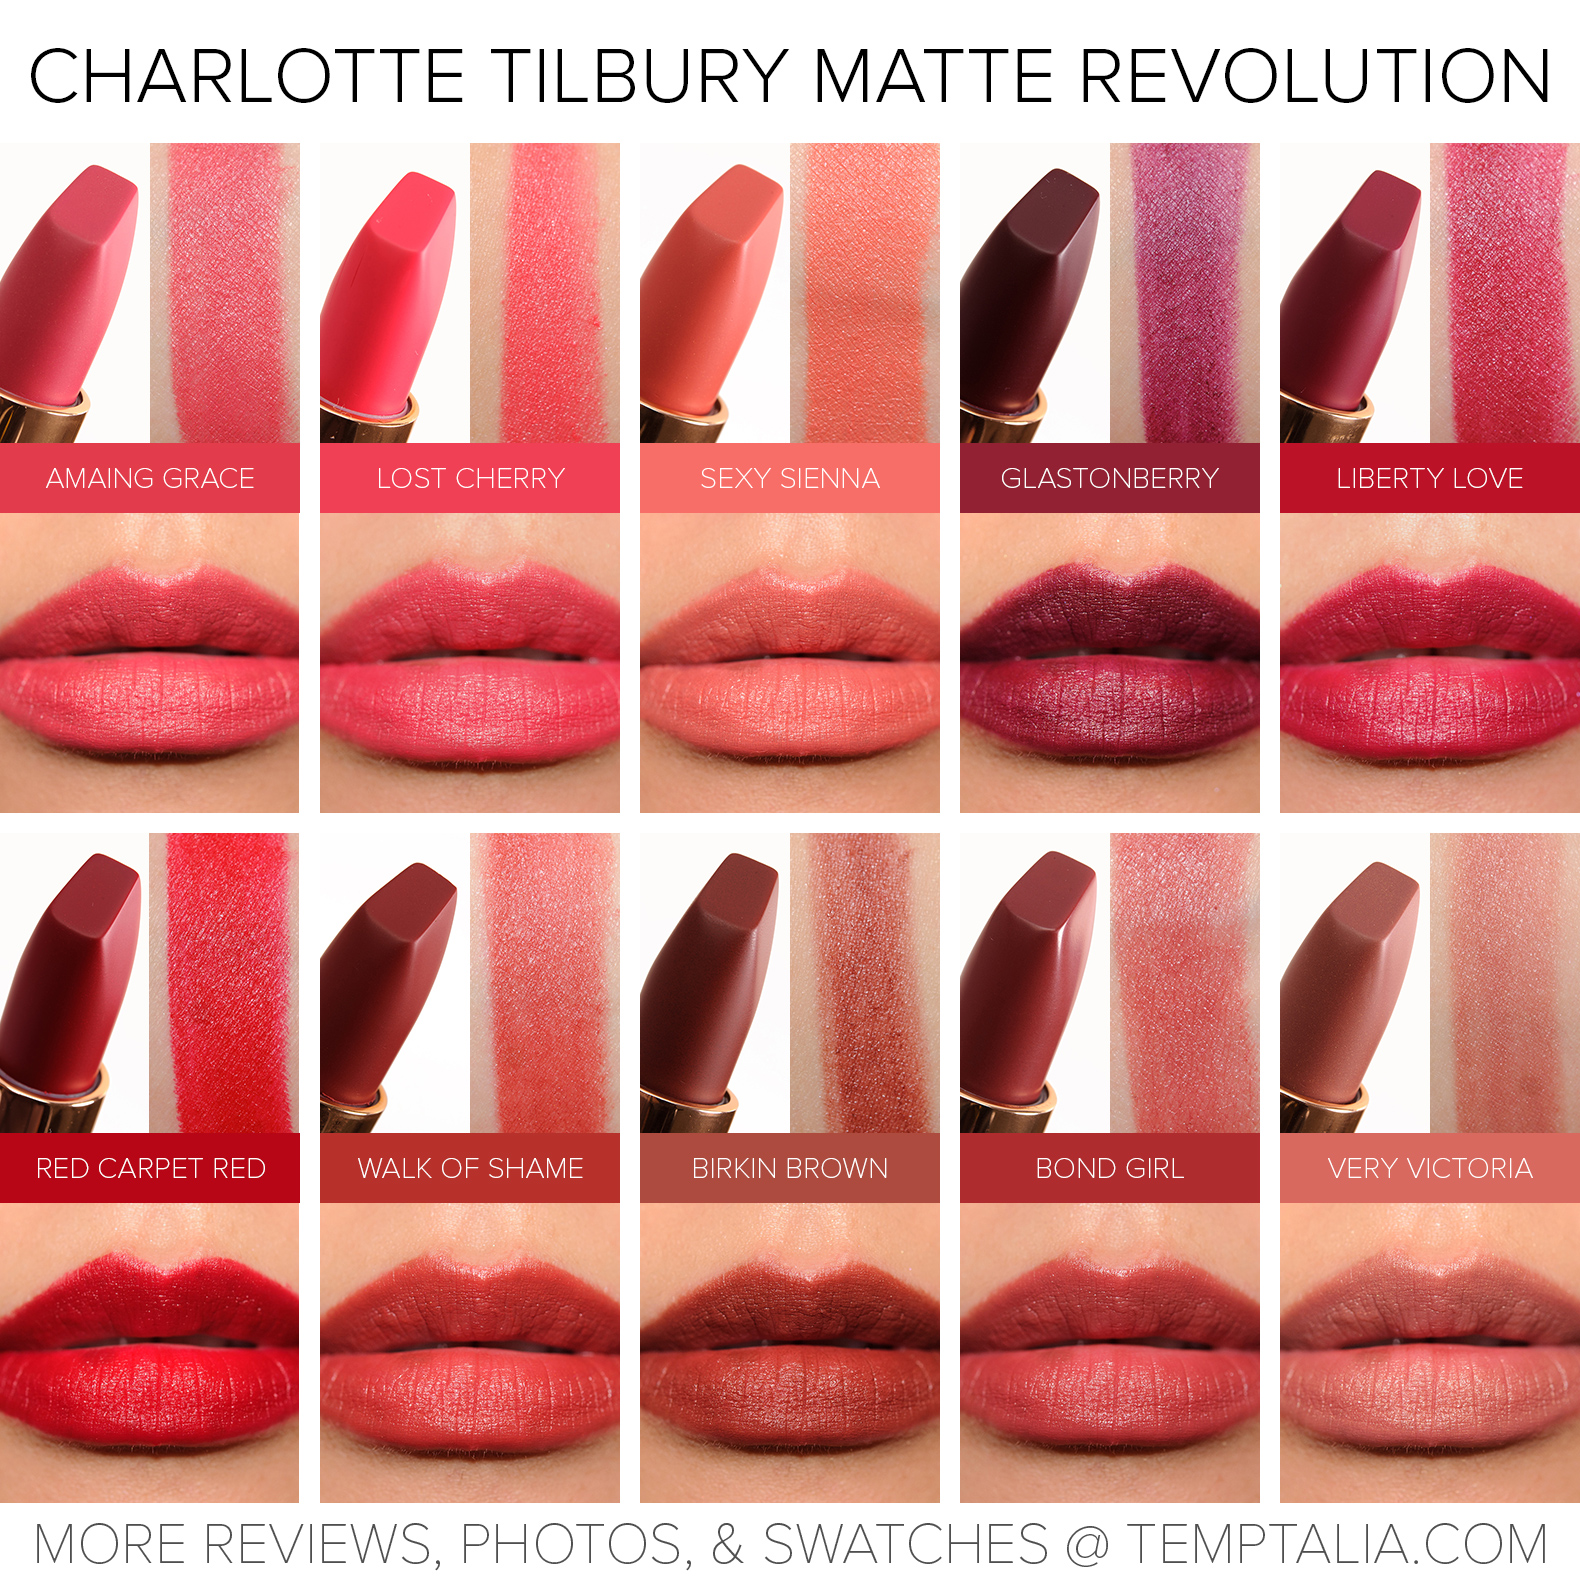 Sneak Peek Charlotte Tilbury Matte Revolution Lipsticks